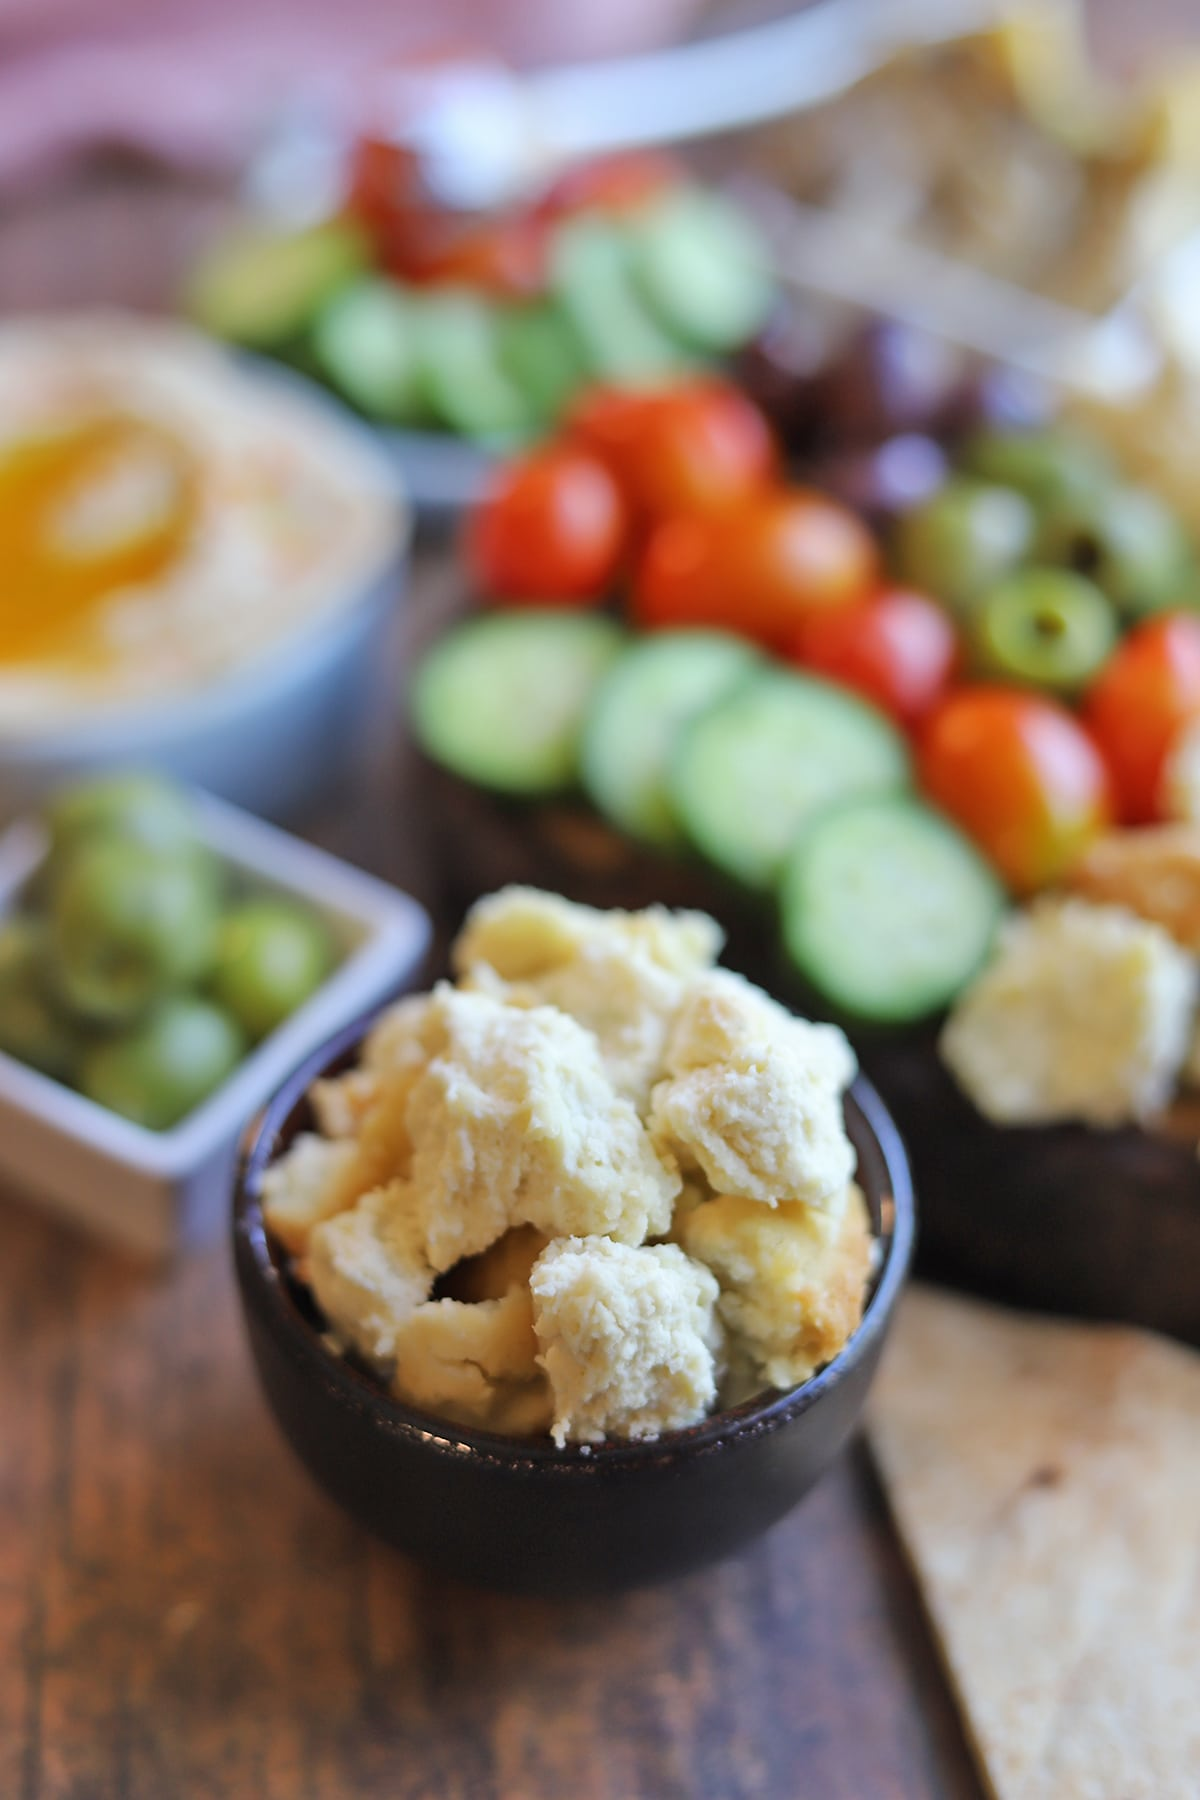 Crumbled almond feta in bowl by mezze platter.